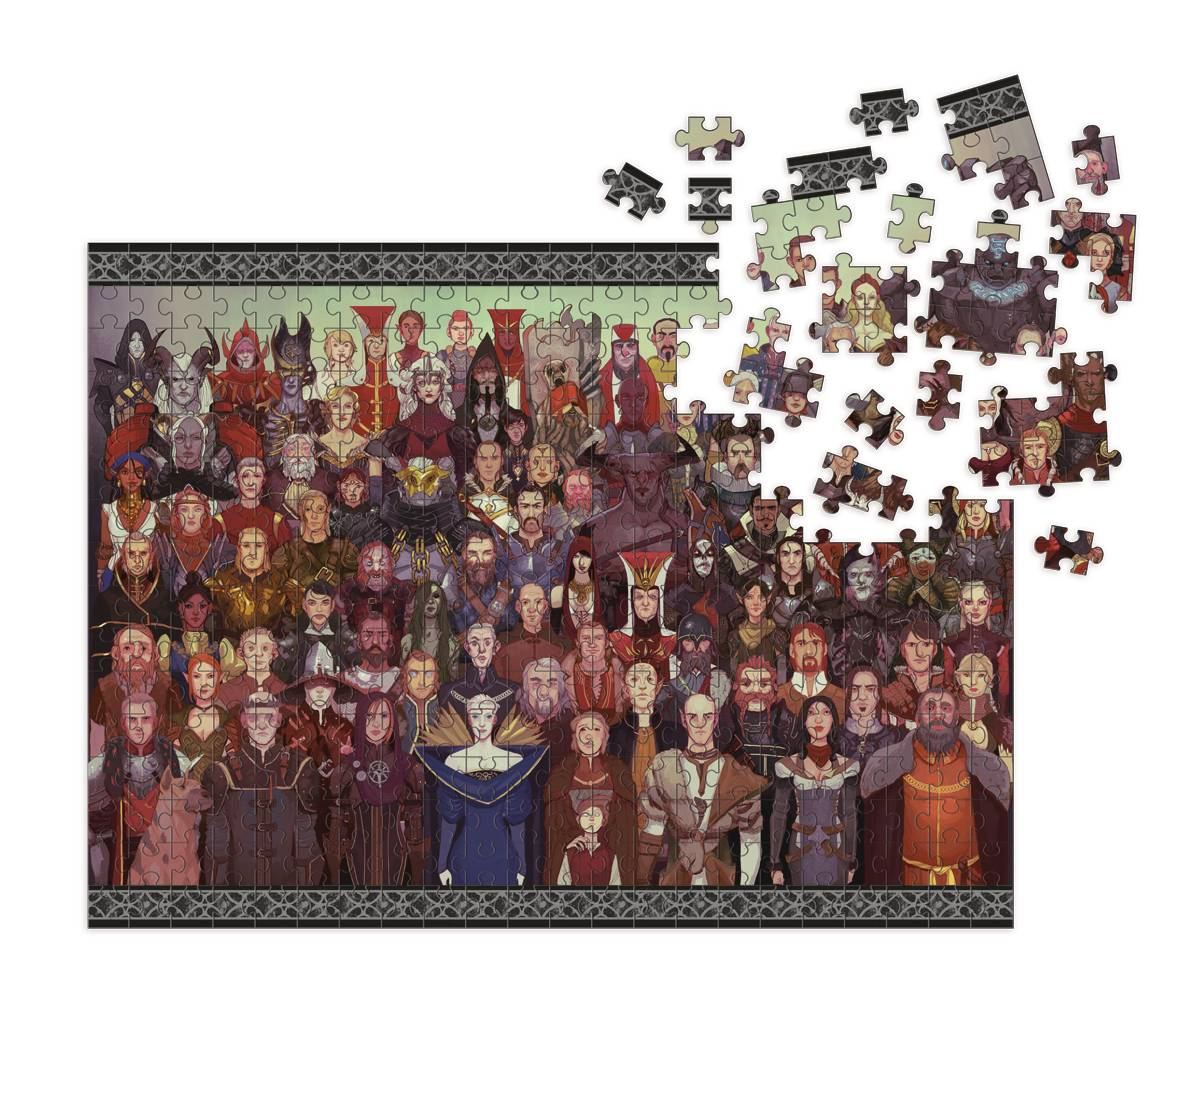 DRAGON AGE CAST OF THOUSANDS 1000 PC DLX PUZZLE